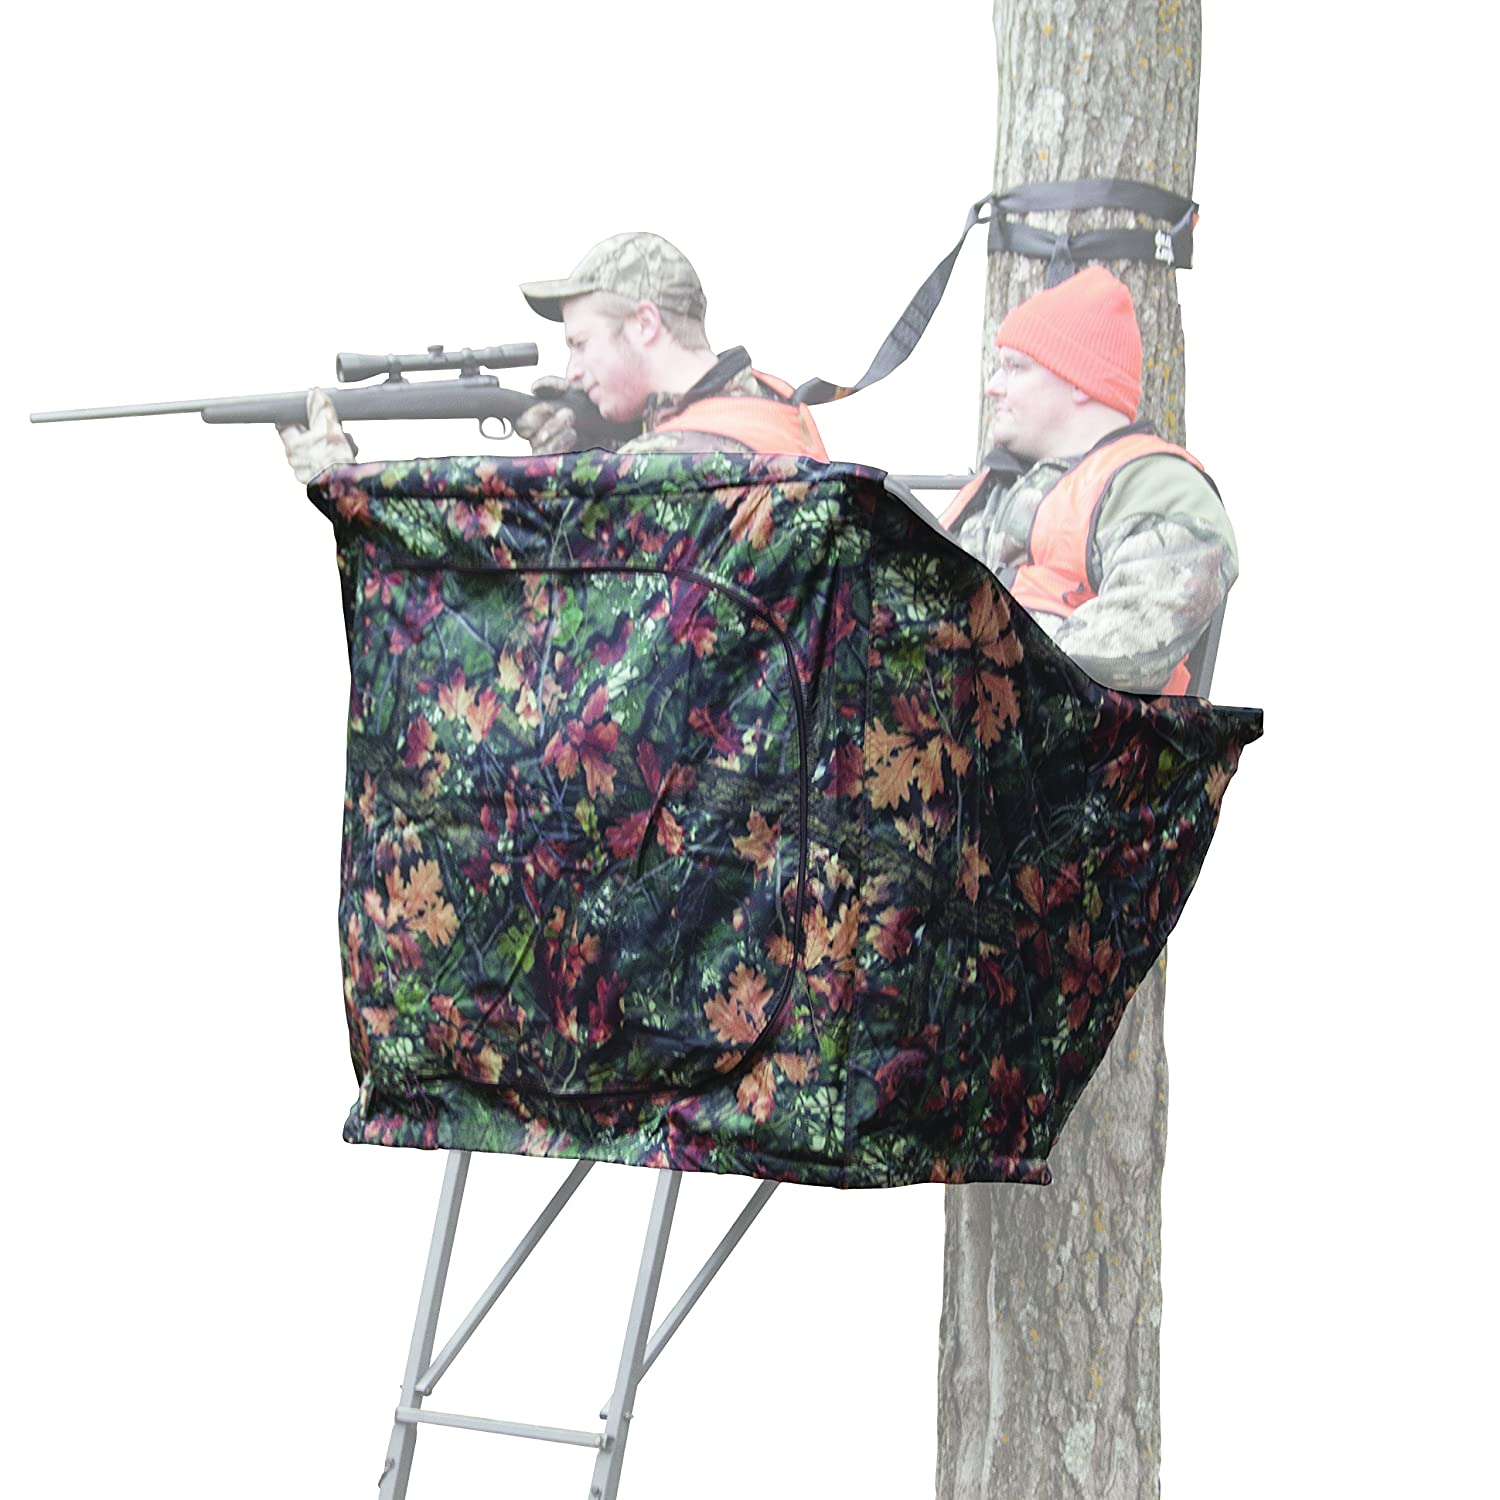 Rivers Edge RE771 Relax 2-Person Ladder Stand Curtain